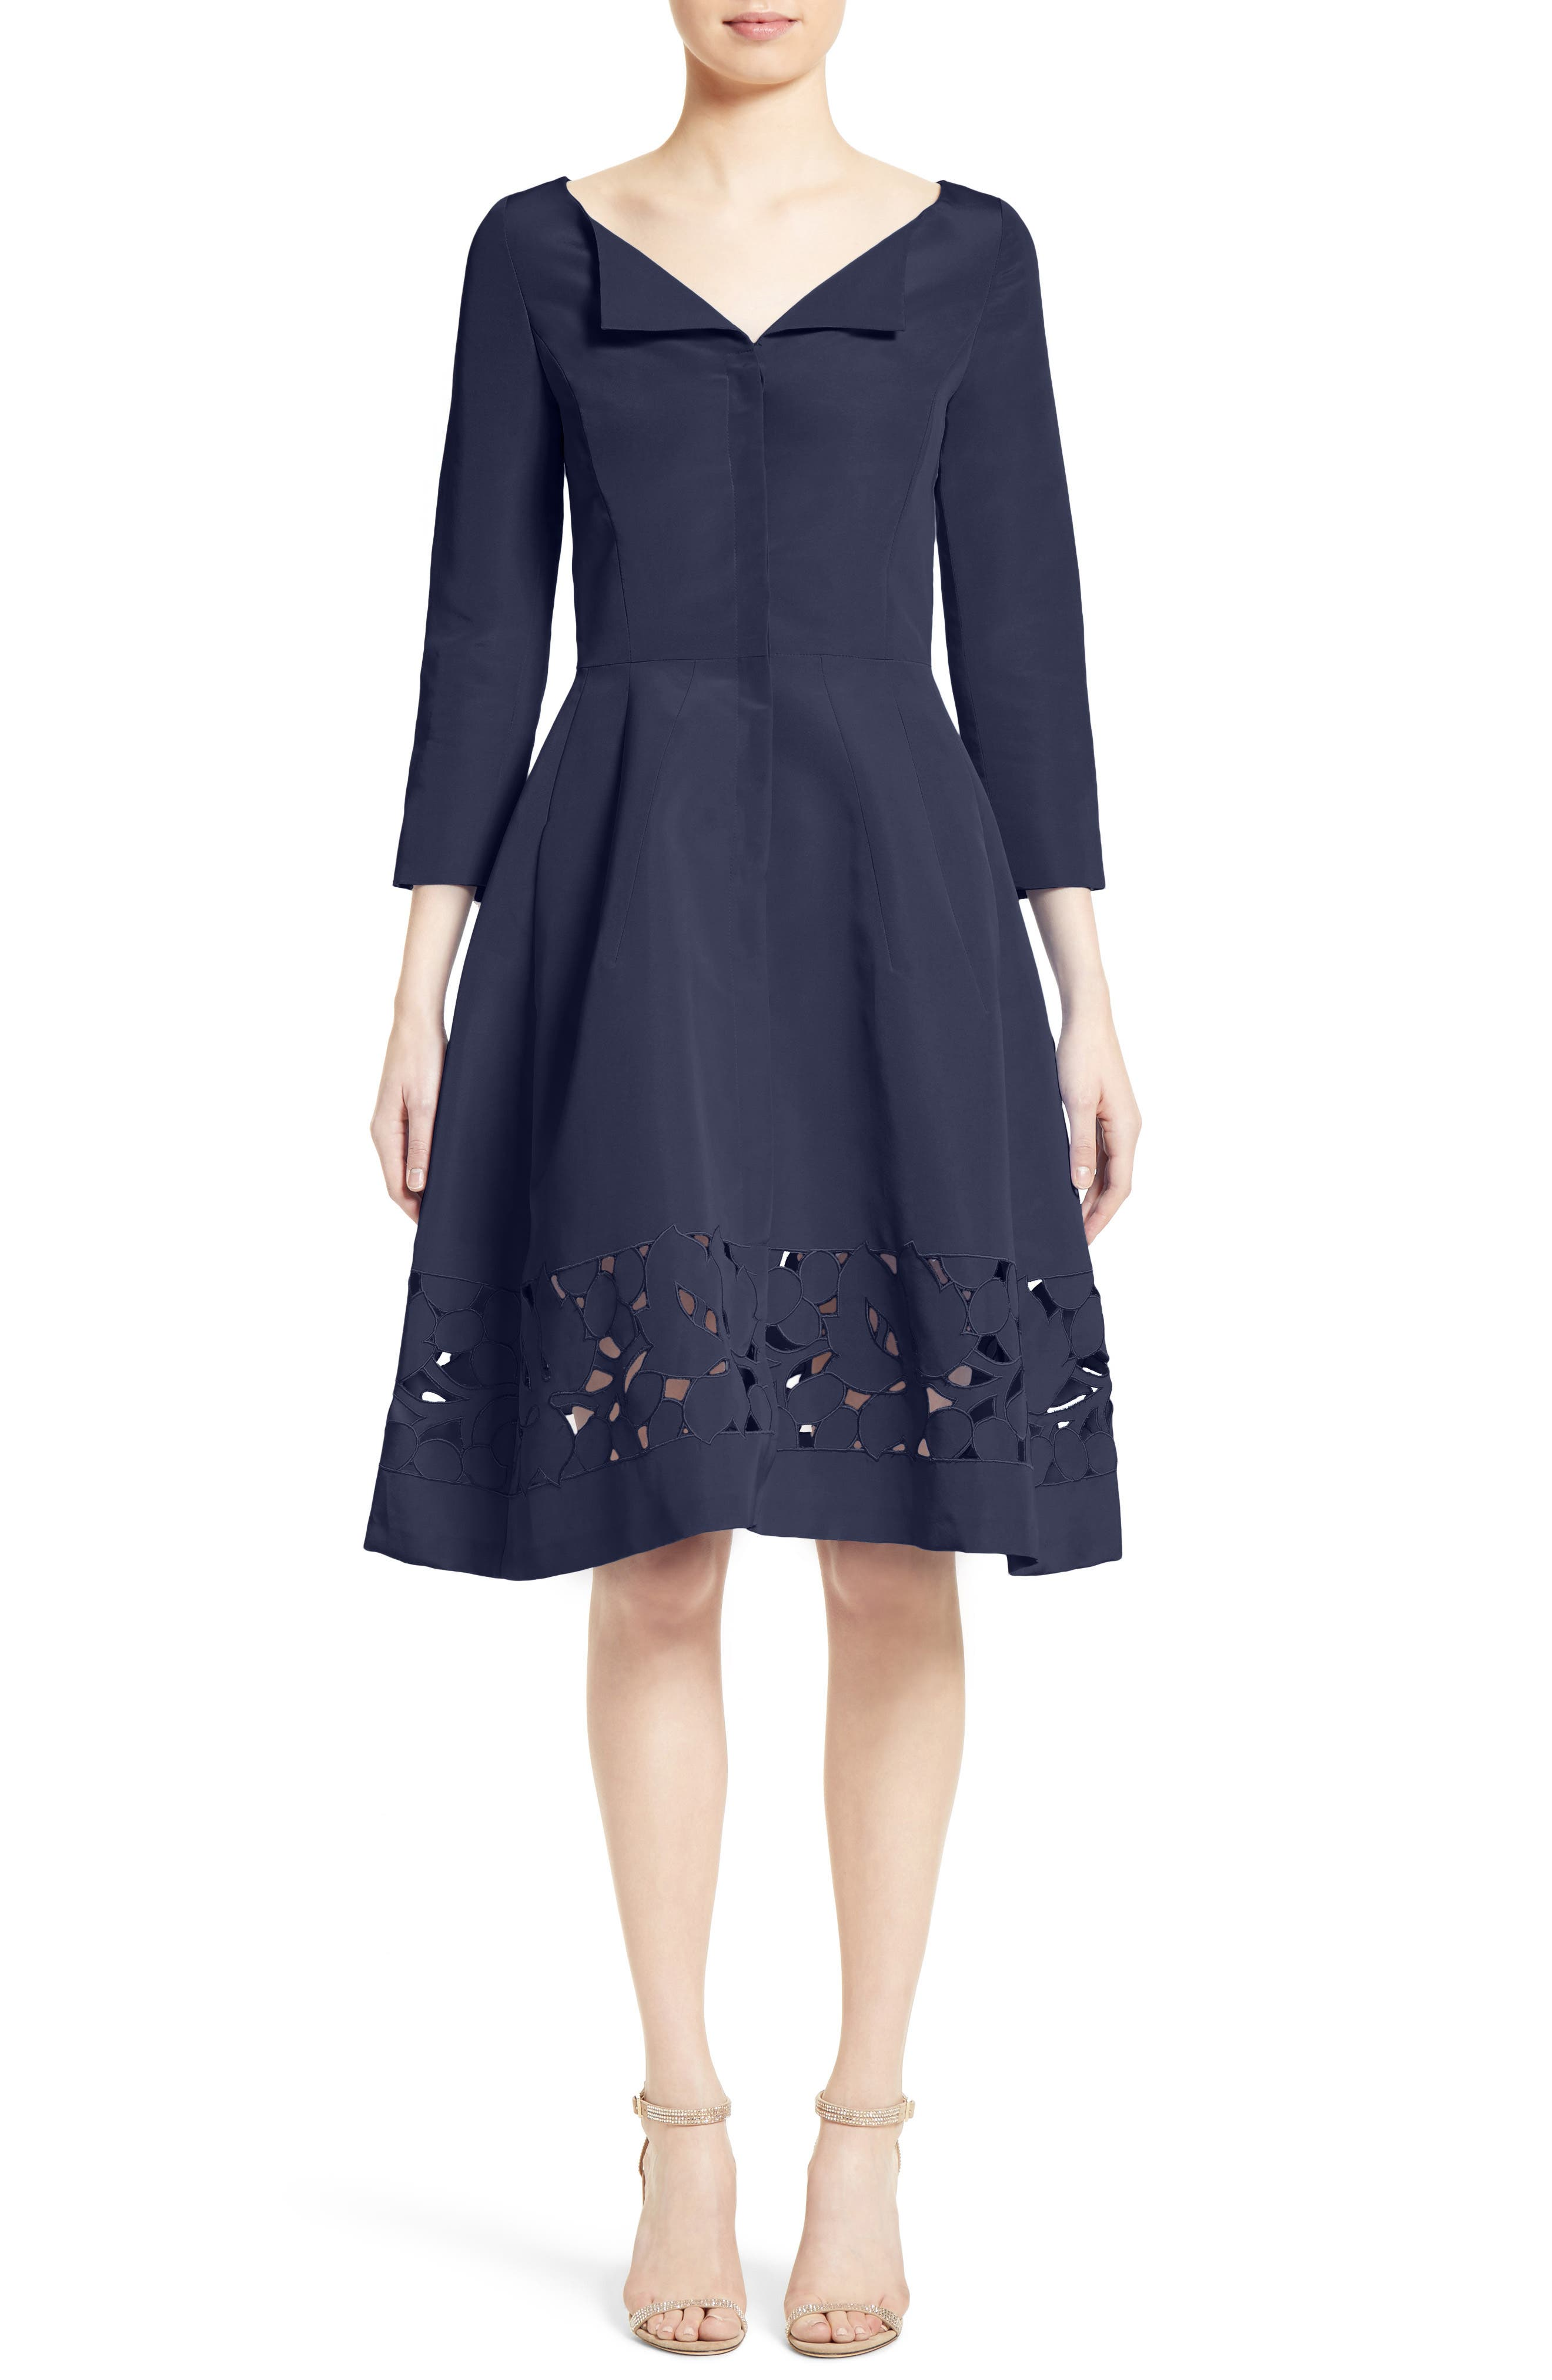 Carolina Herrerra Laser Cut Eyelet Button Front Dress